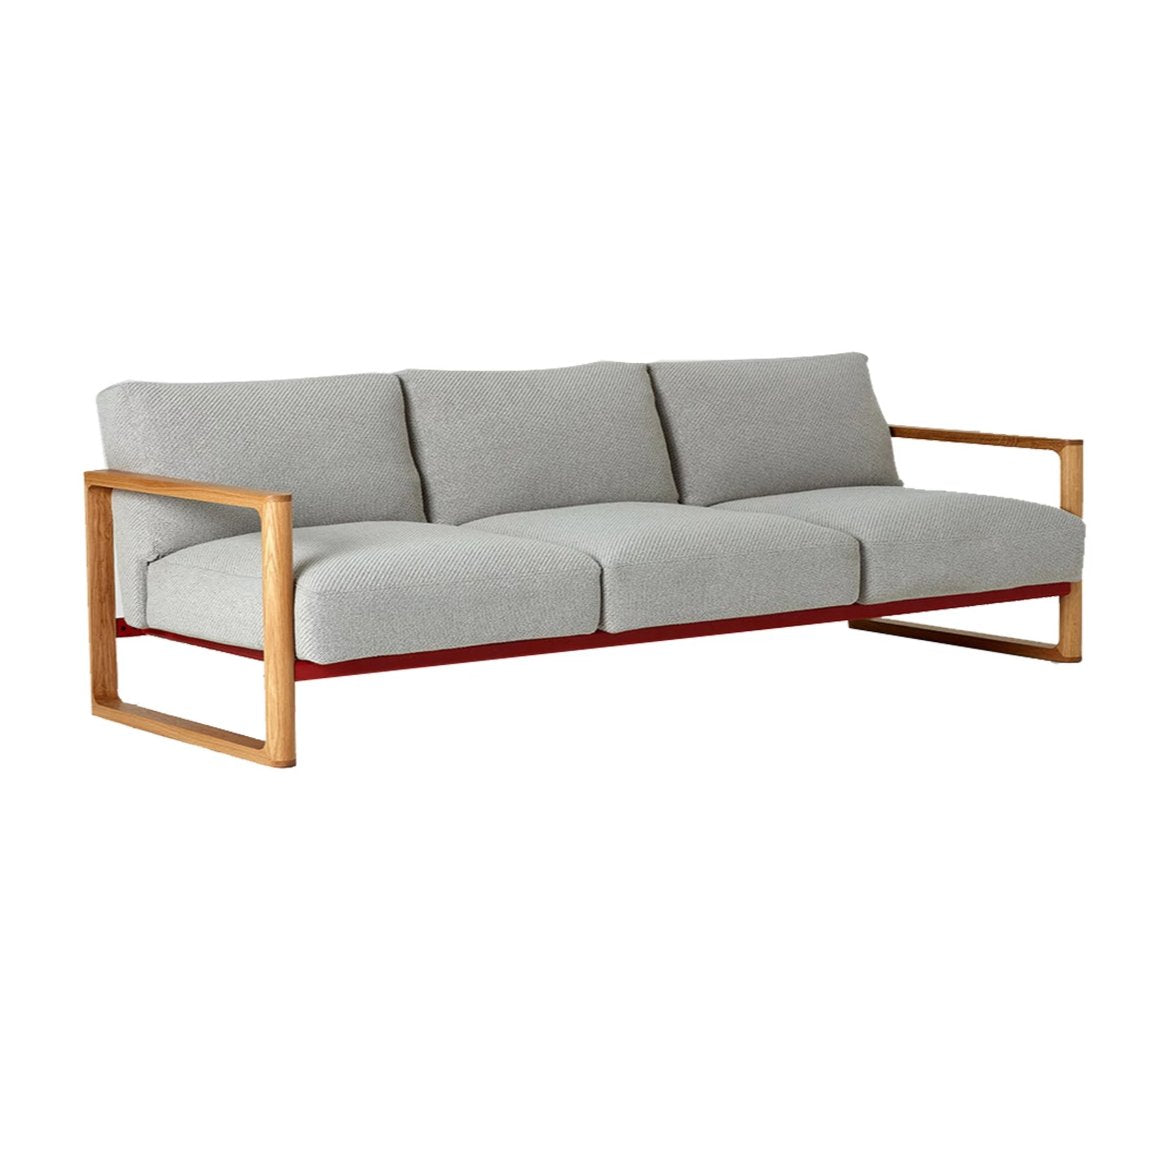 Lupin Sofa: 3 Seater